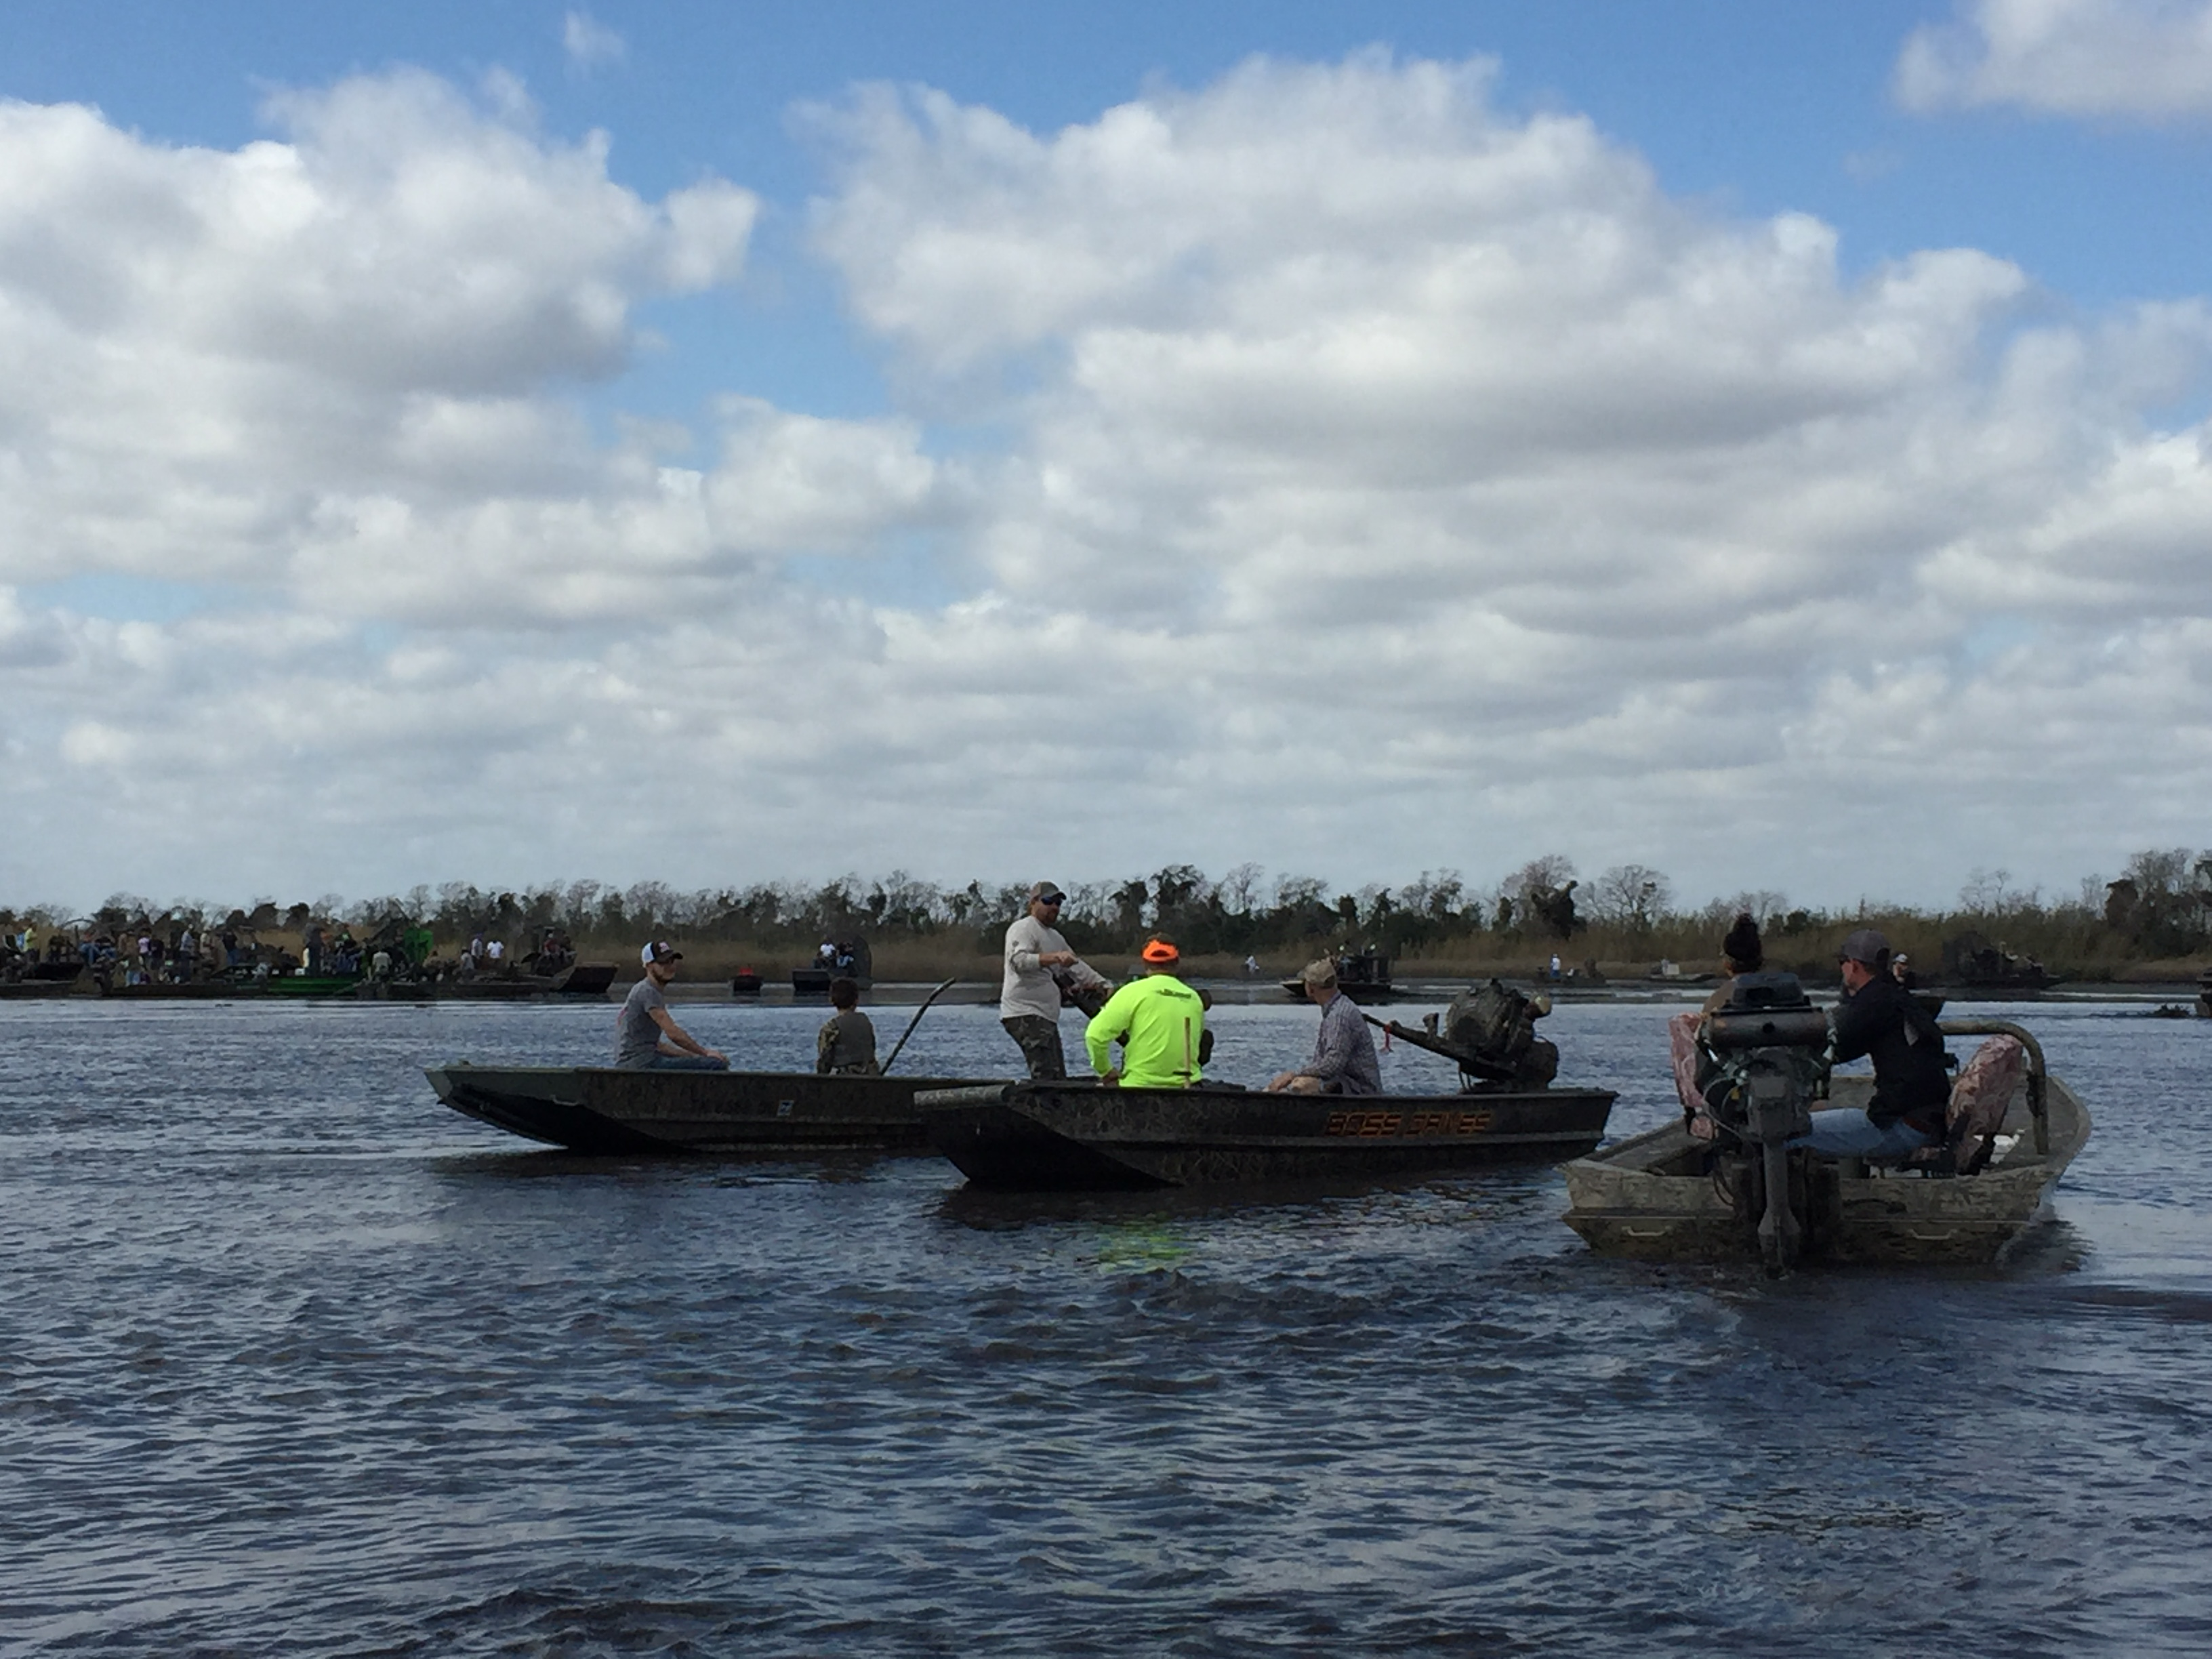 Mud Boats in Bridge City, Texas